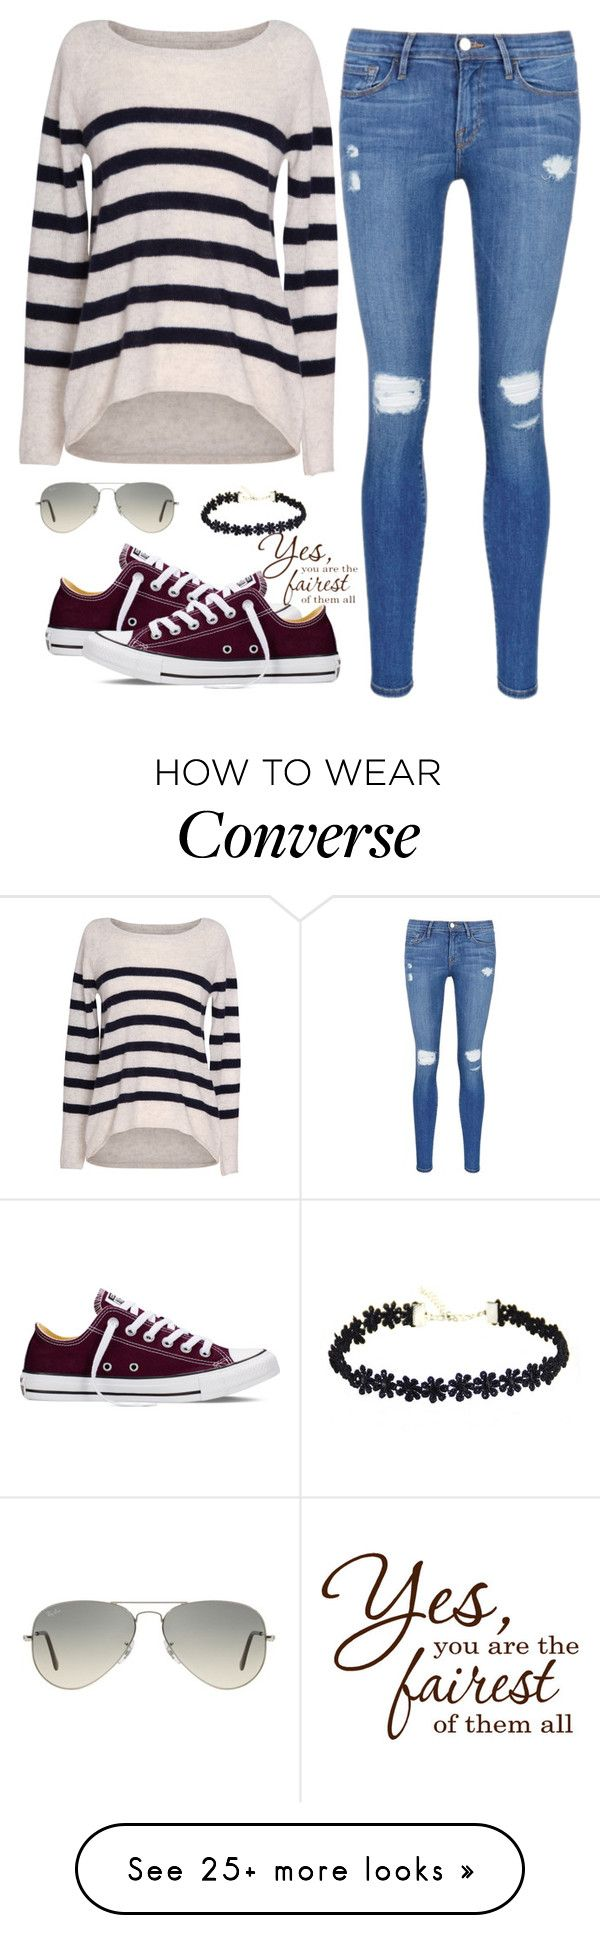 """""""stripes are ripe."""" by lalatheawesome on Polyvore featuring Velvet by Graham & Spencer, Frame Denim, Converse, Ray-Ban, women's clothing, women's fashion, women, female, woman and misses"""